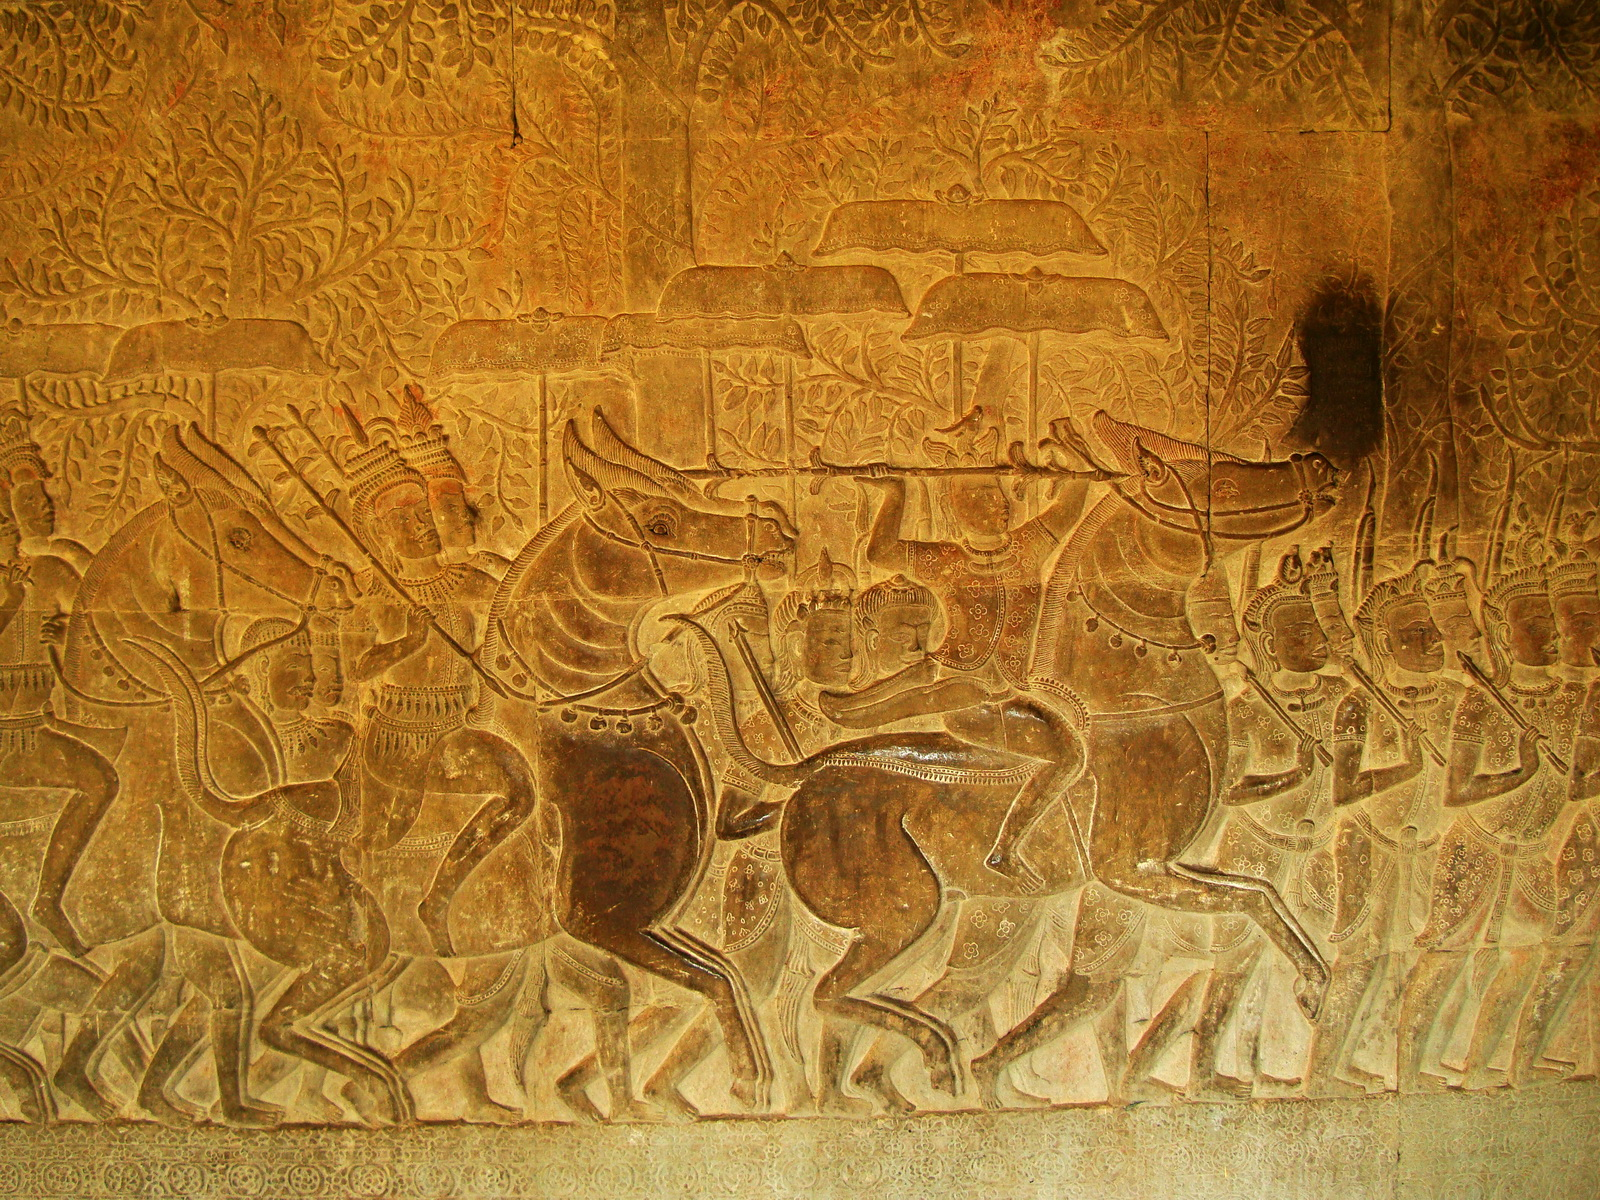 Angkor Wat Bas relief S Gallery W Wing Historic Procession 114